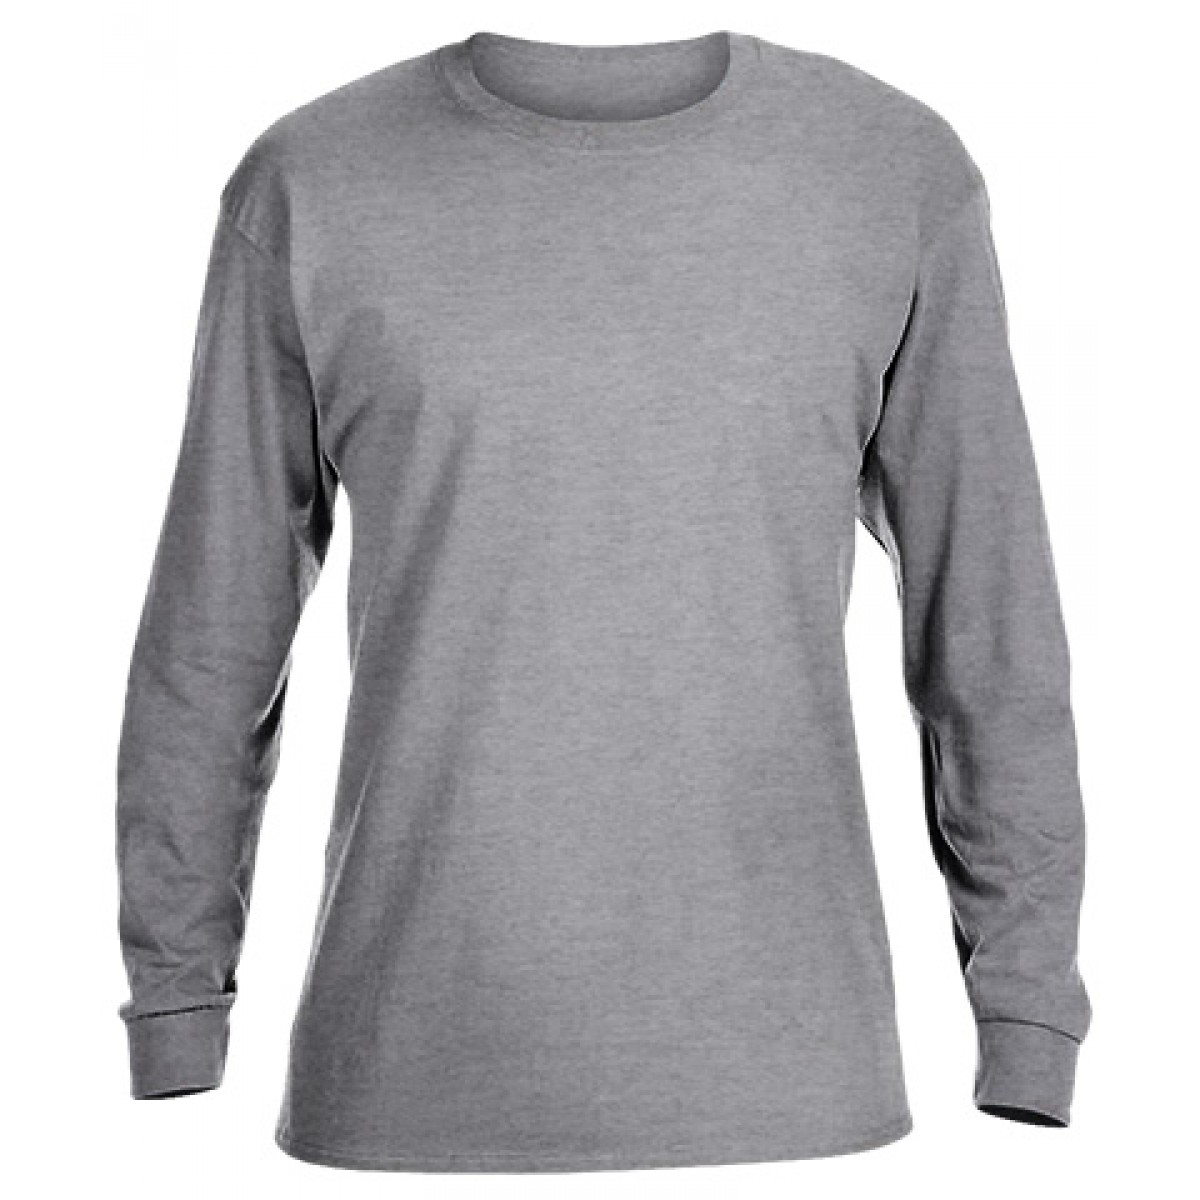 Heavy Cotton Long-Sleeve Adidas Shirt-Sports Grey-XS